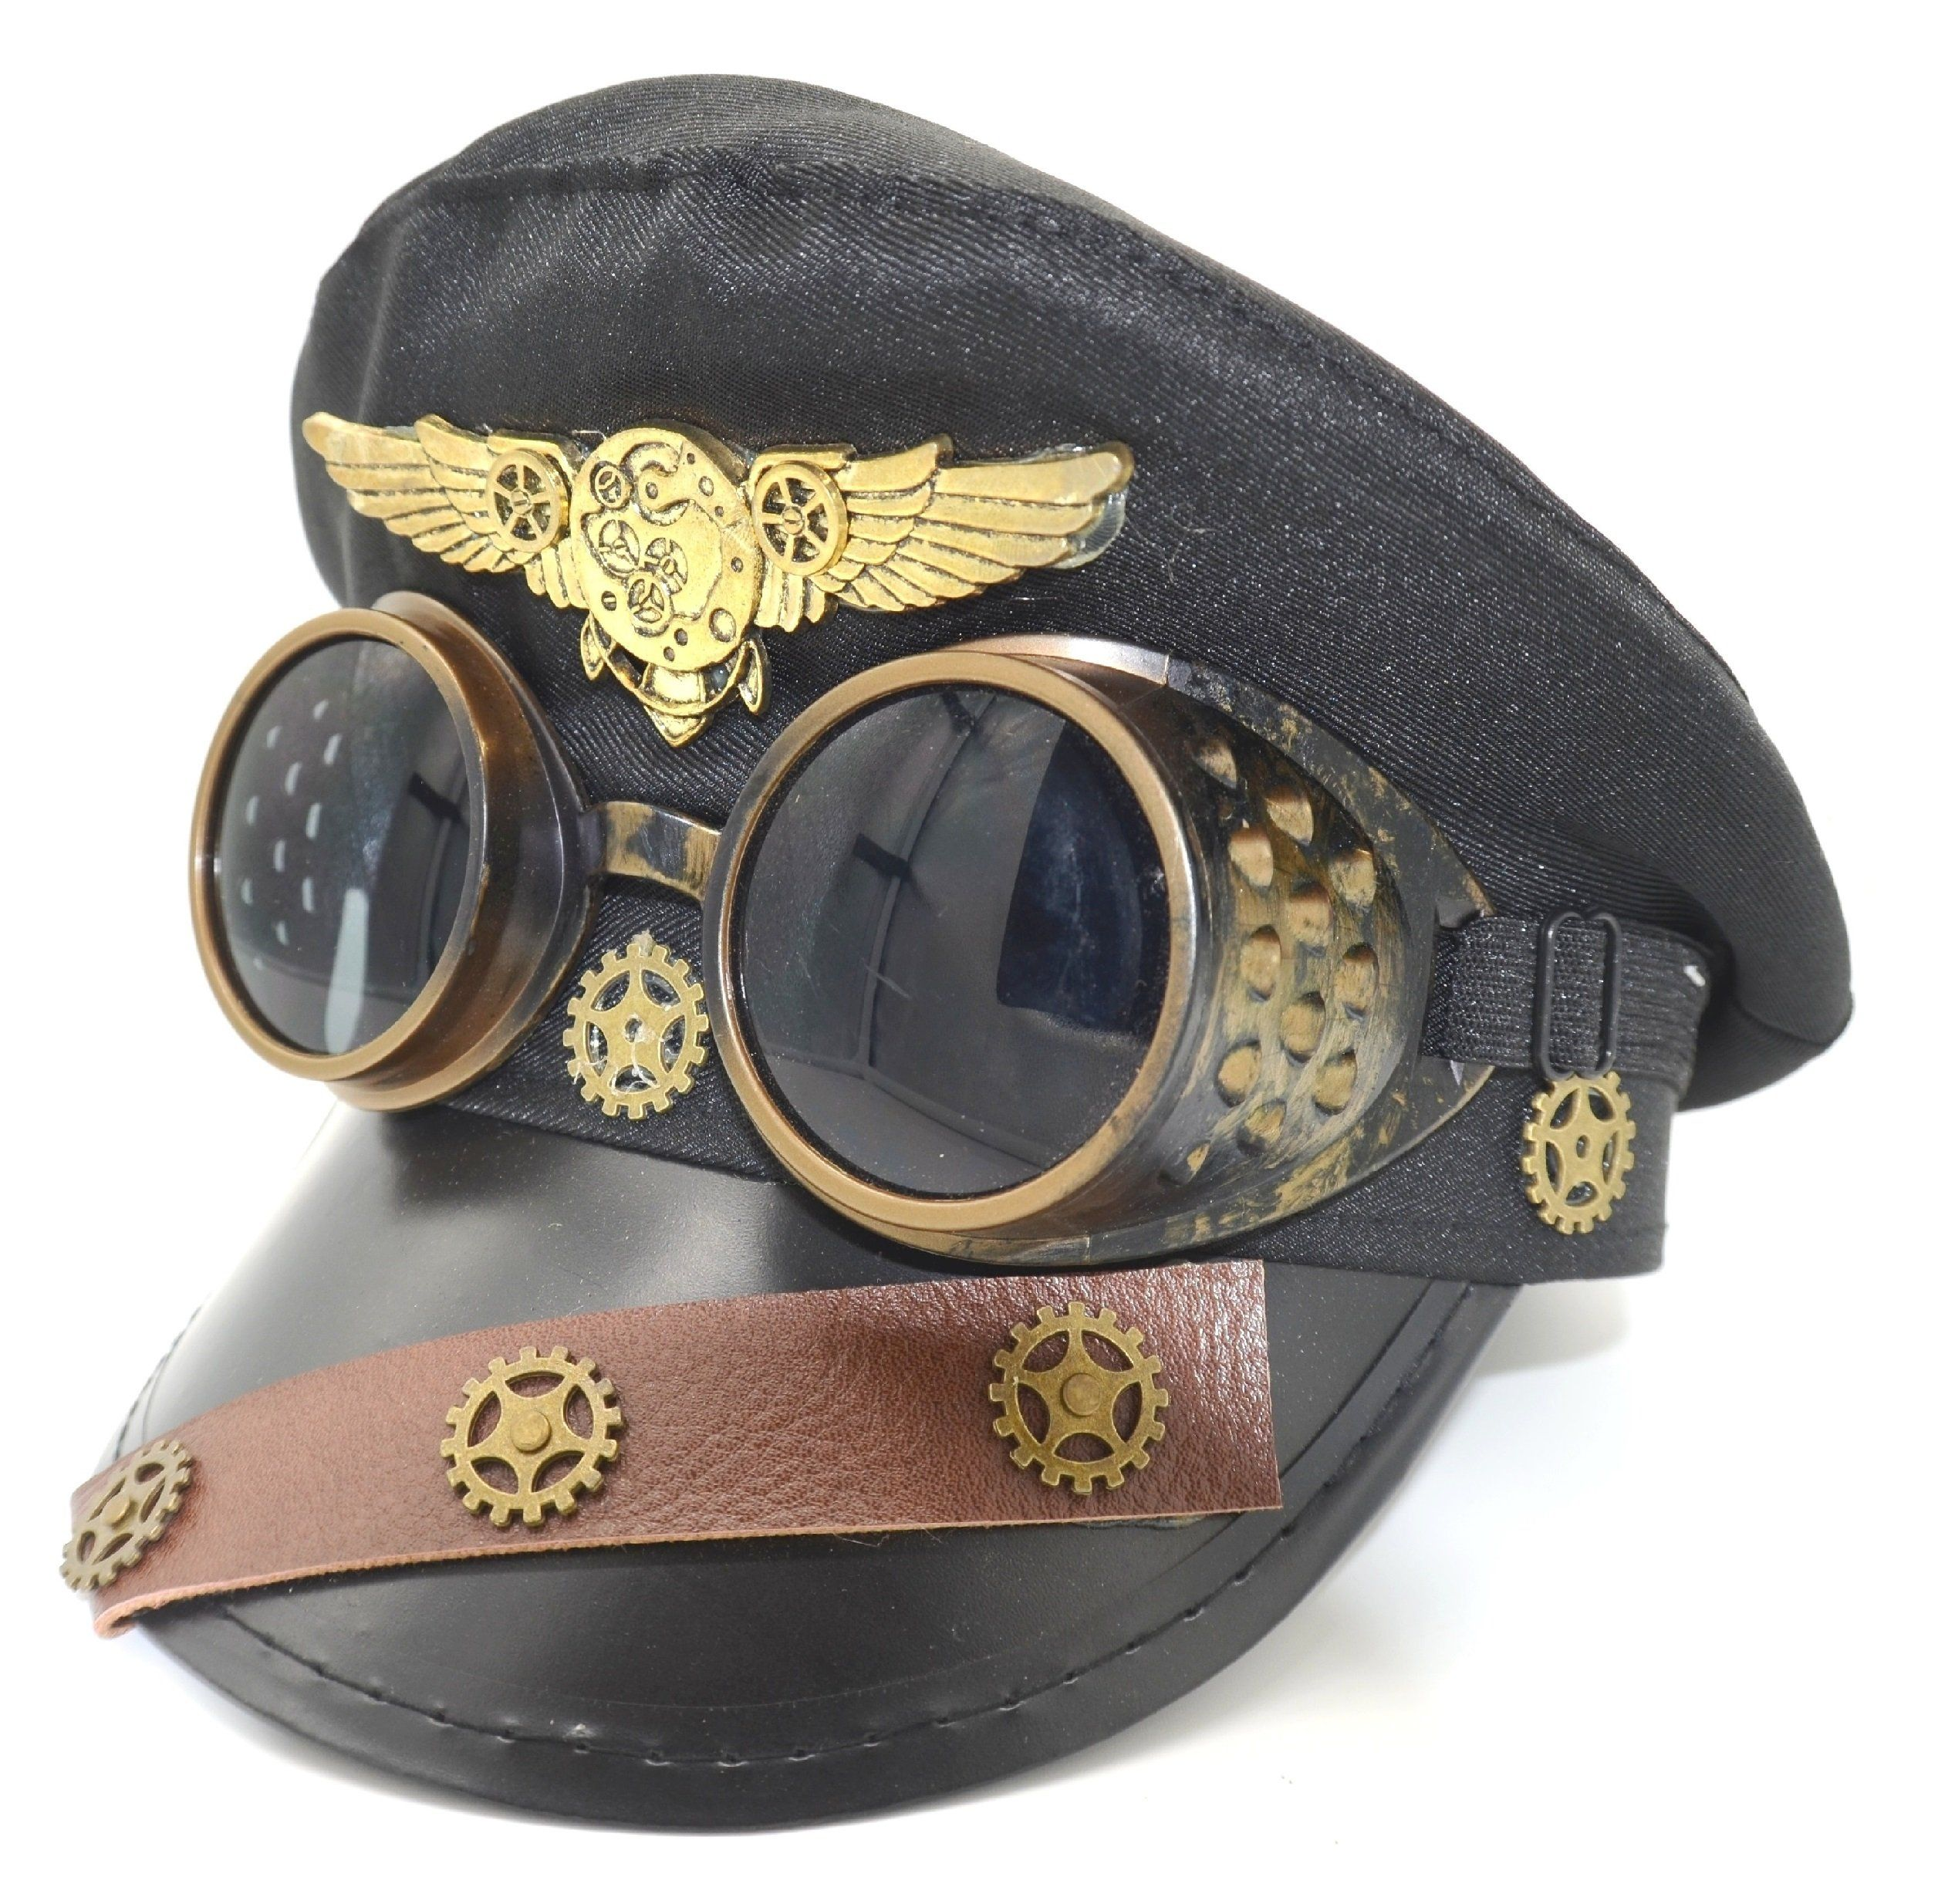 Photo of Steampunk Pilot Aviator Police Captain Hat Handmade Costume Cosplay Party W/ Goggles